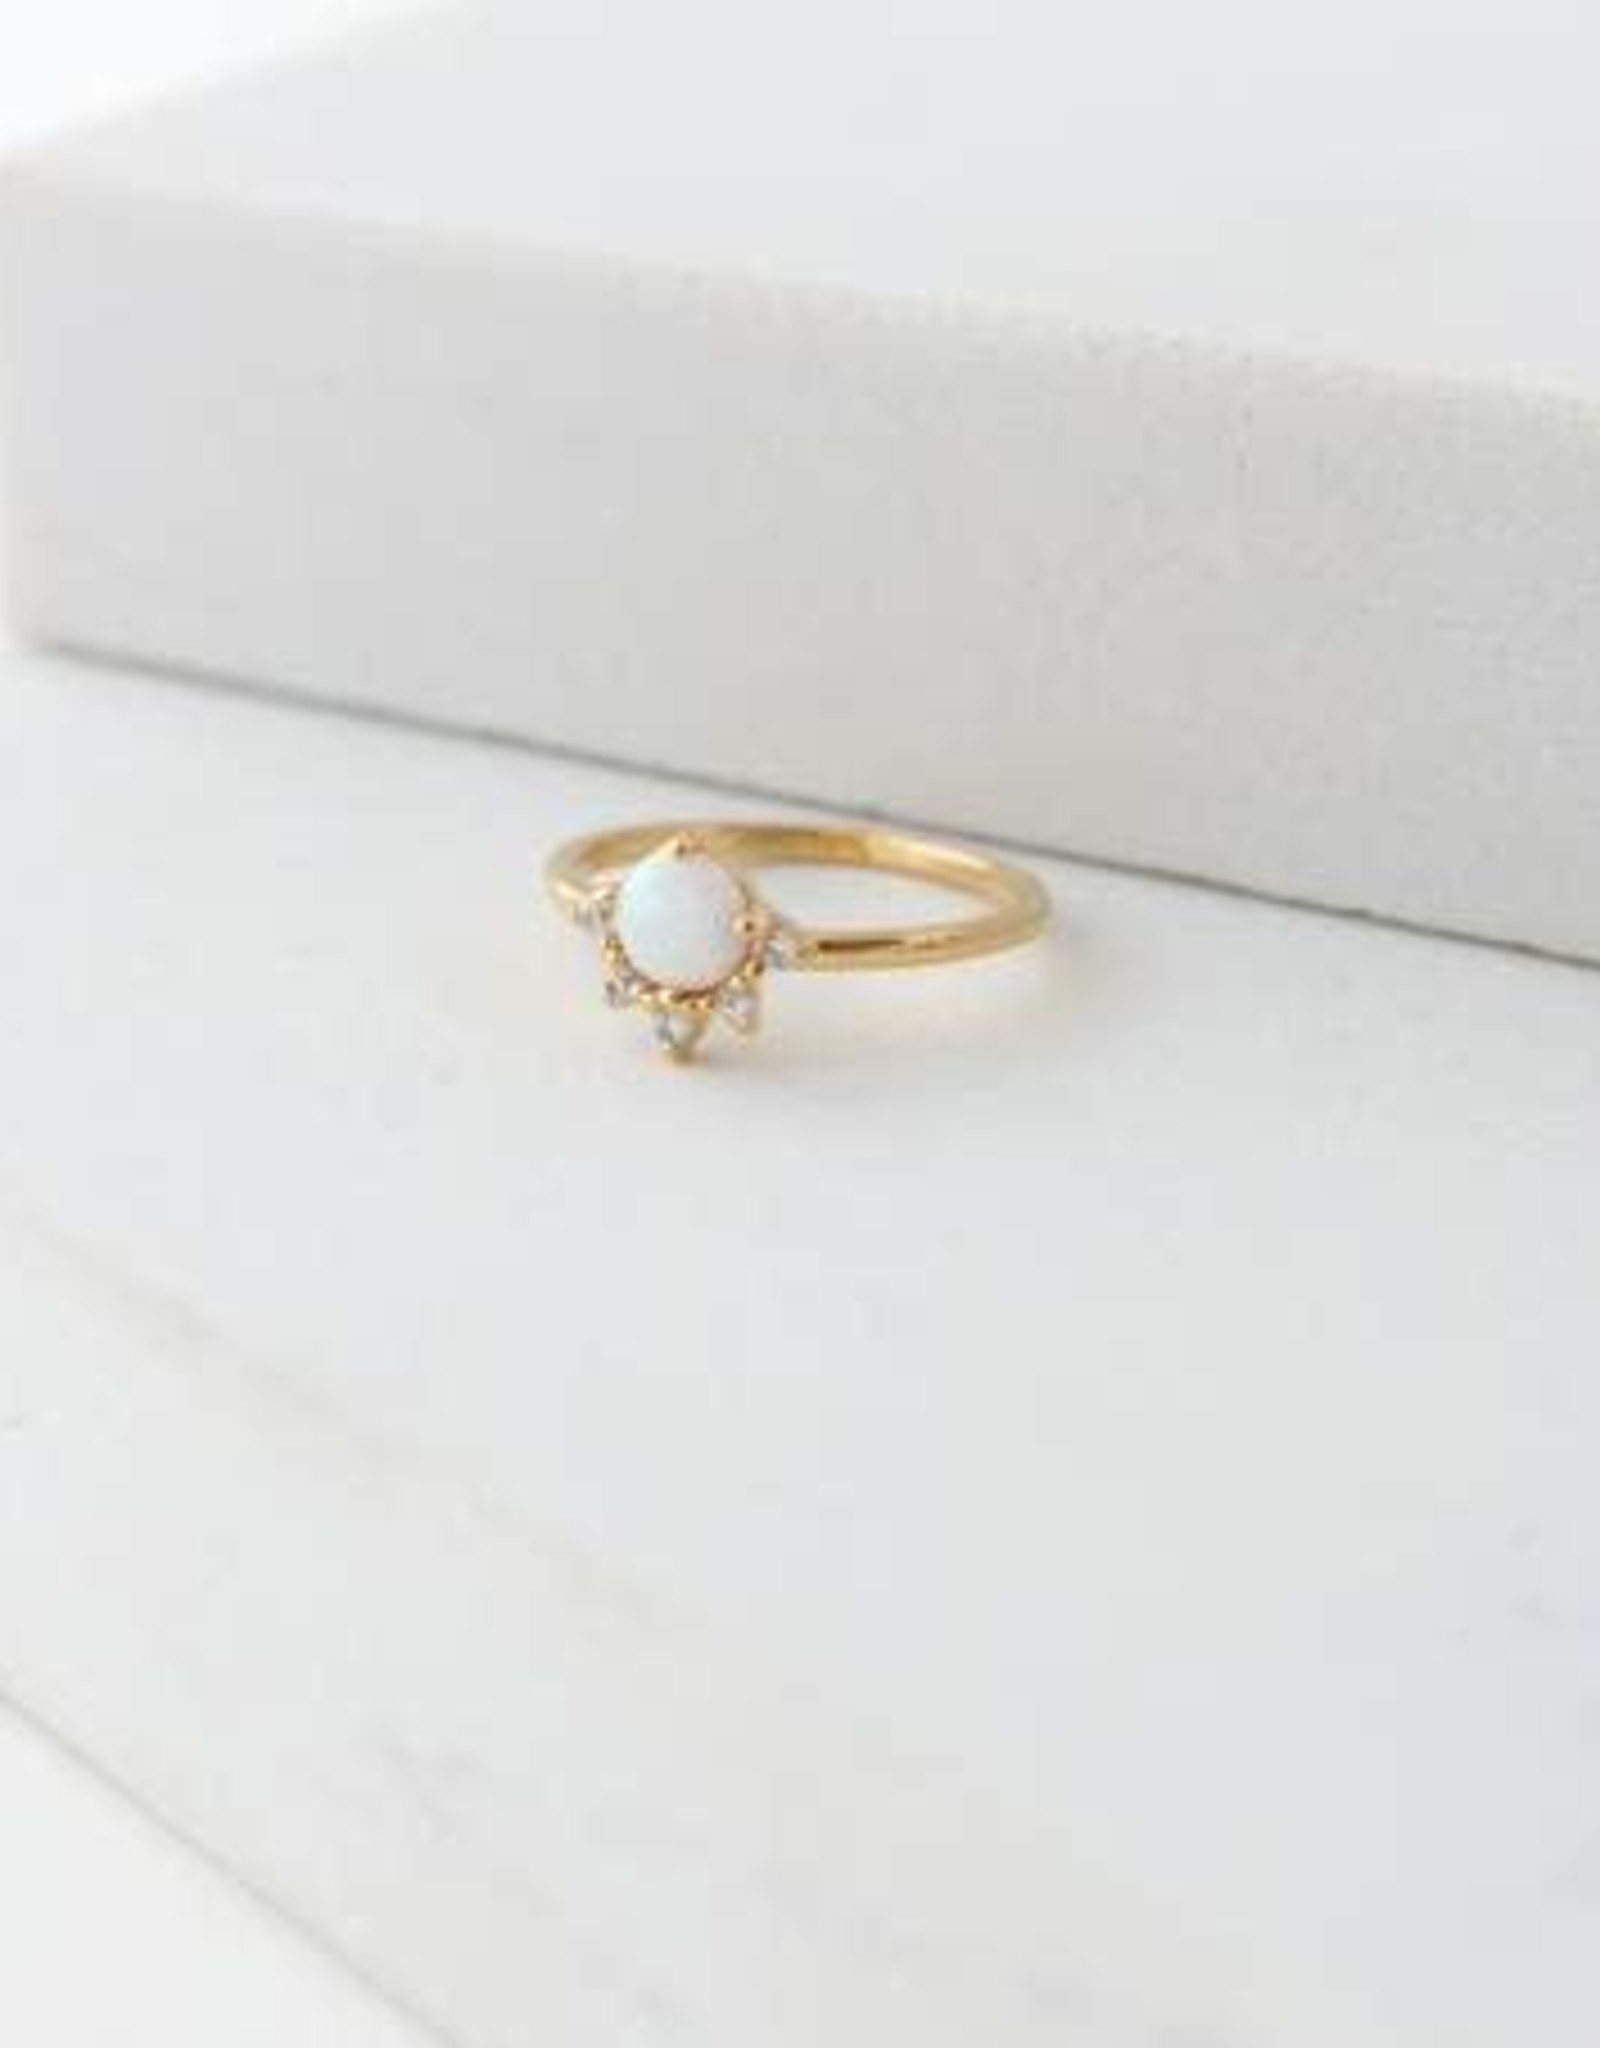 Gold/Opal Size 7 Juno Ring